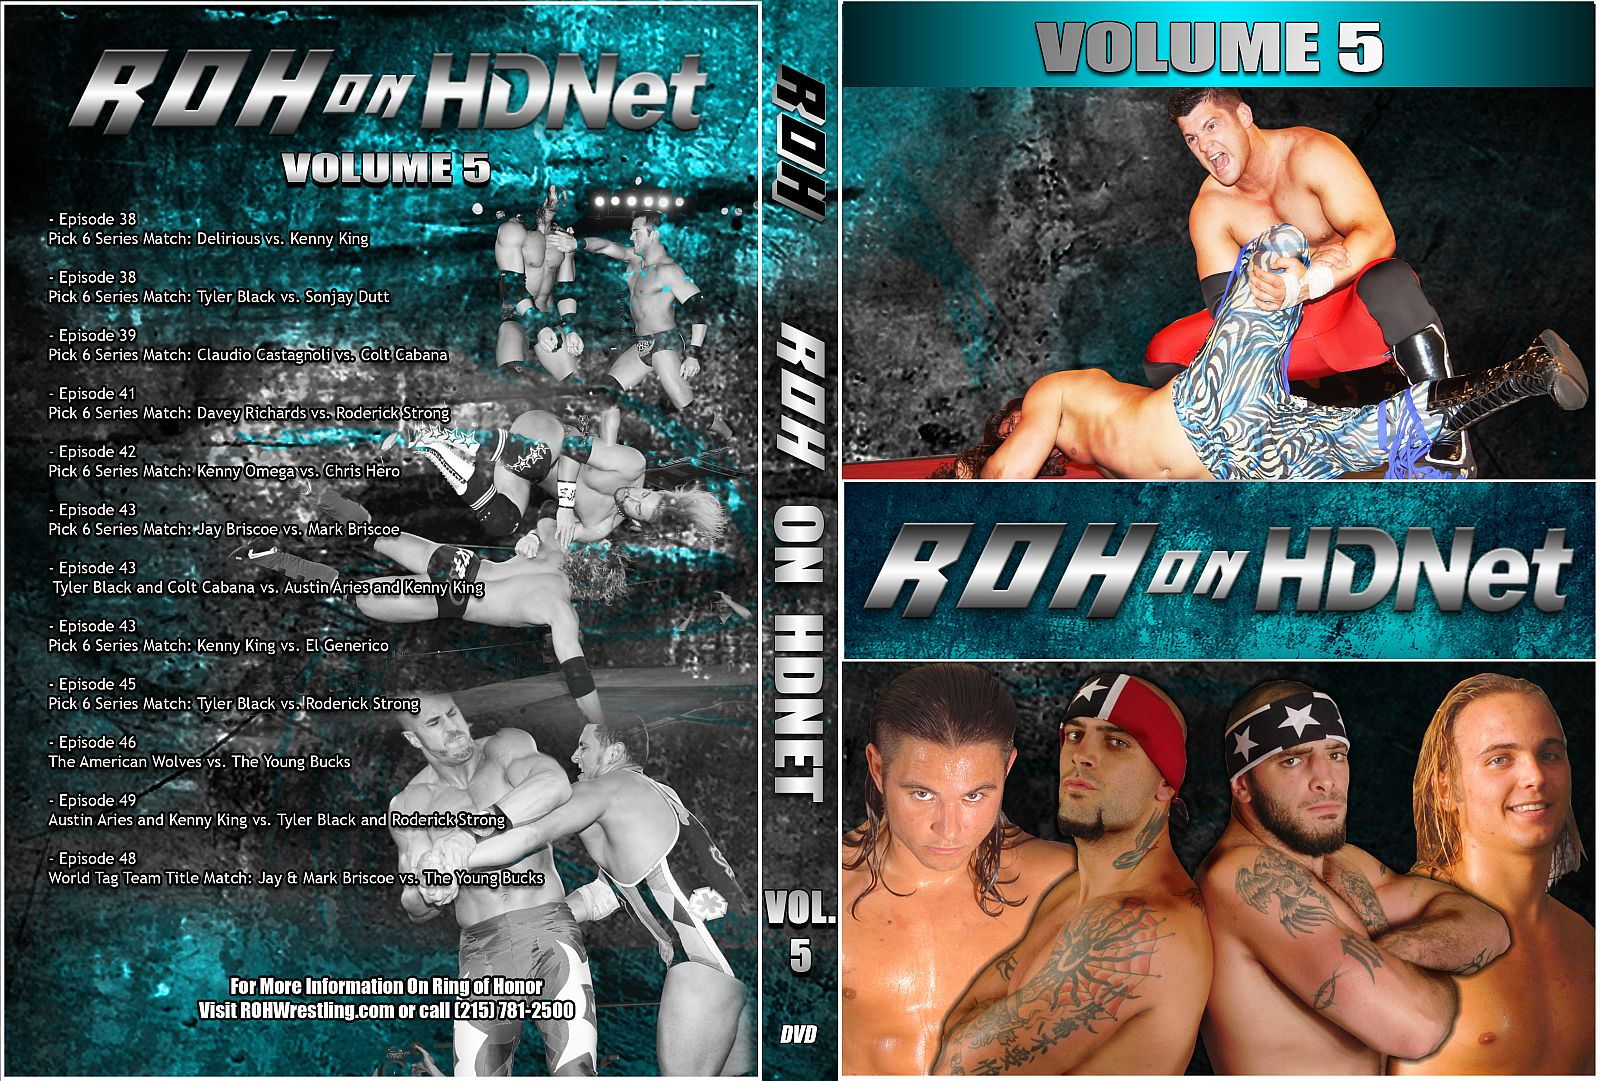 HDnetVol5copy